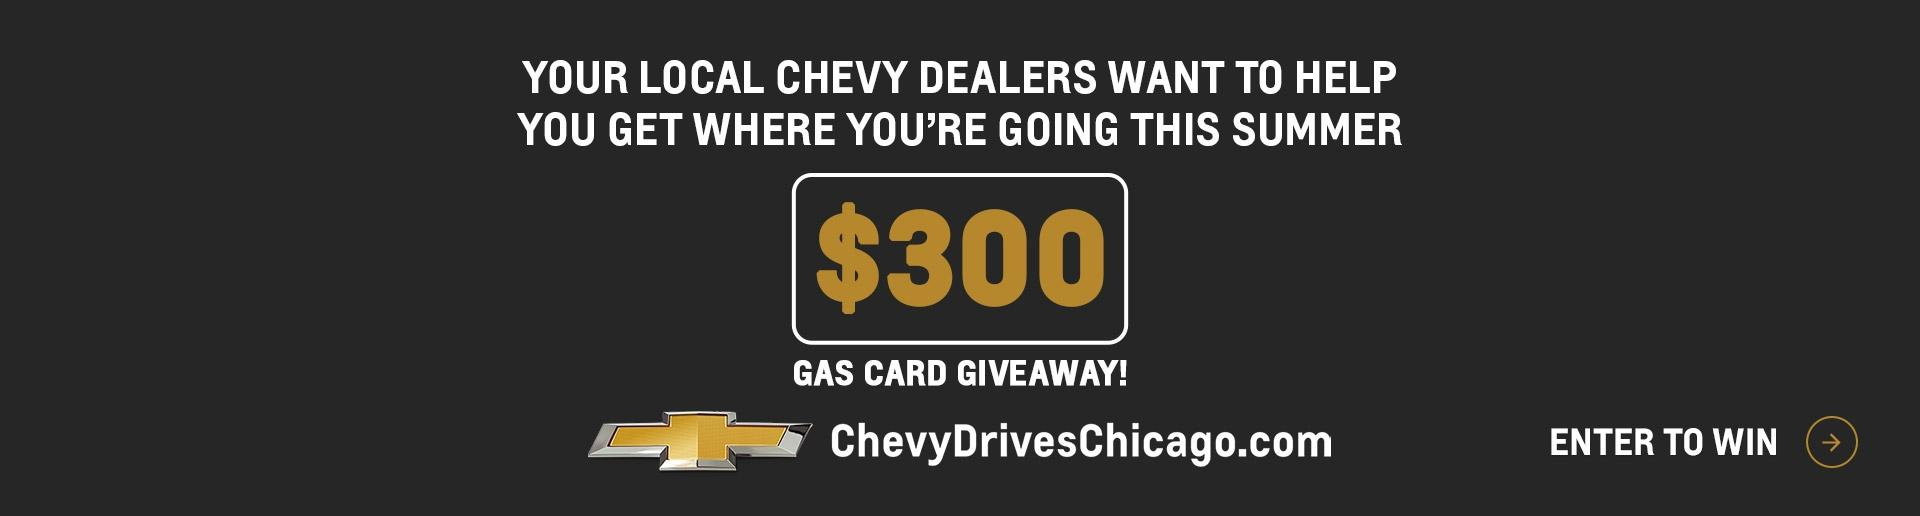 Gas Card Giveaway | Chevy Drives Chicago